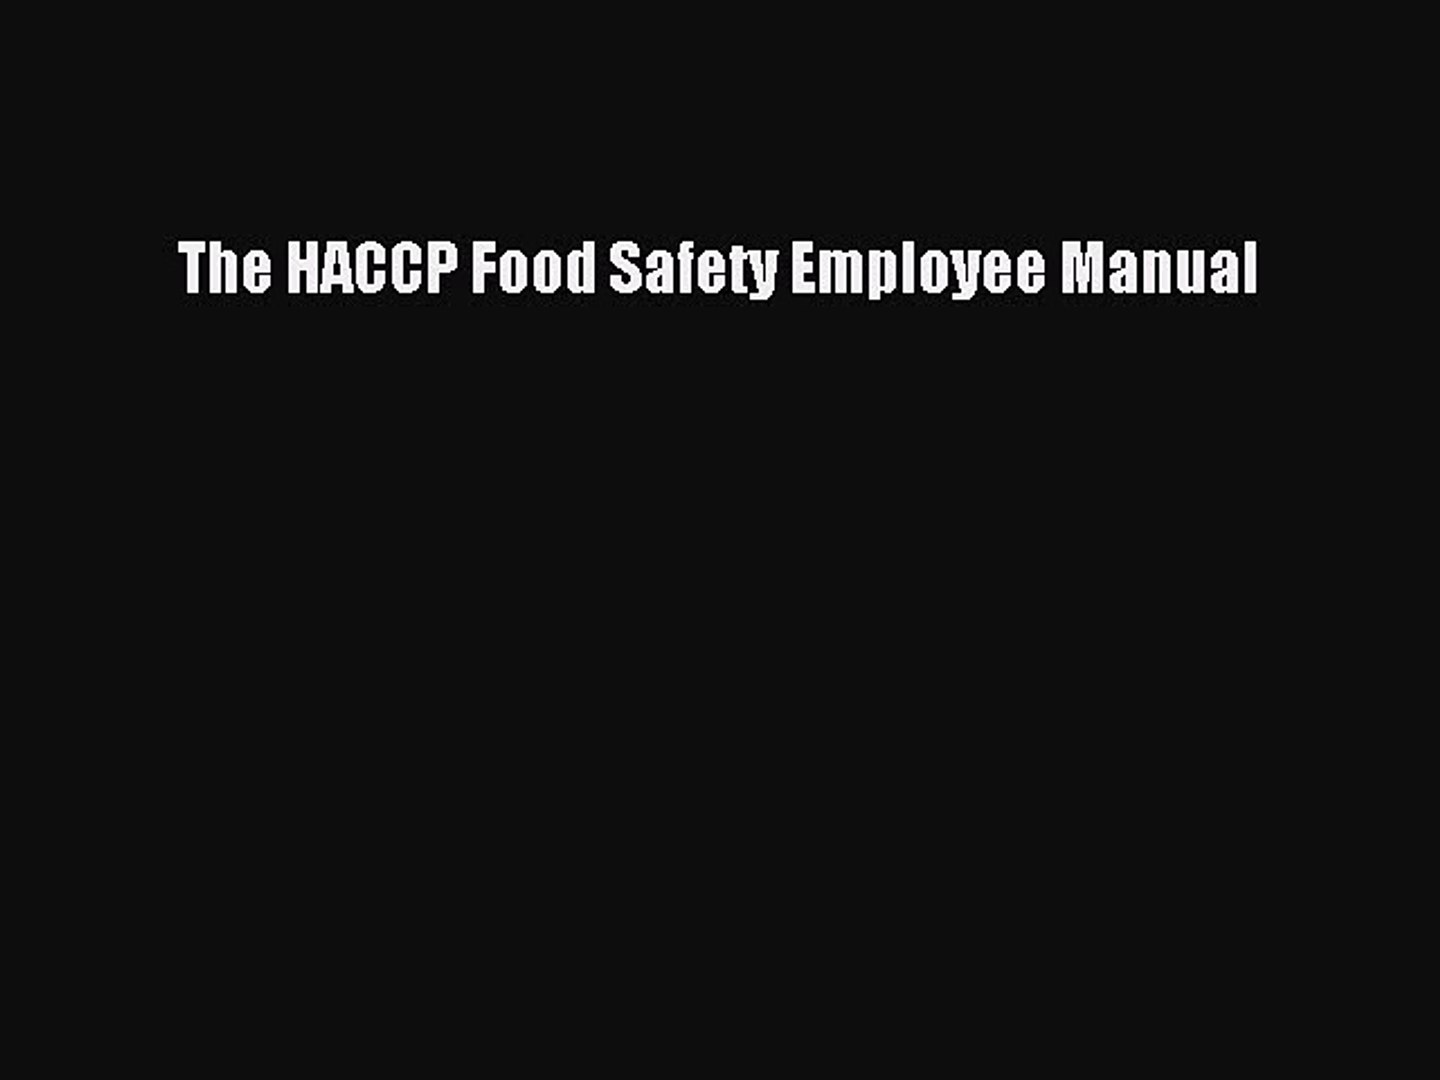 [PDF] The HACCP Food Safety Employee Manual Download Online